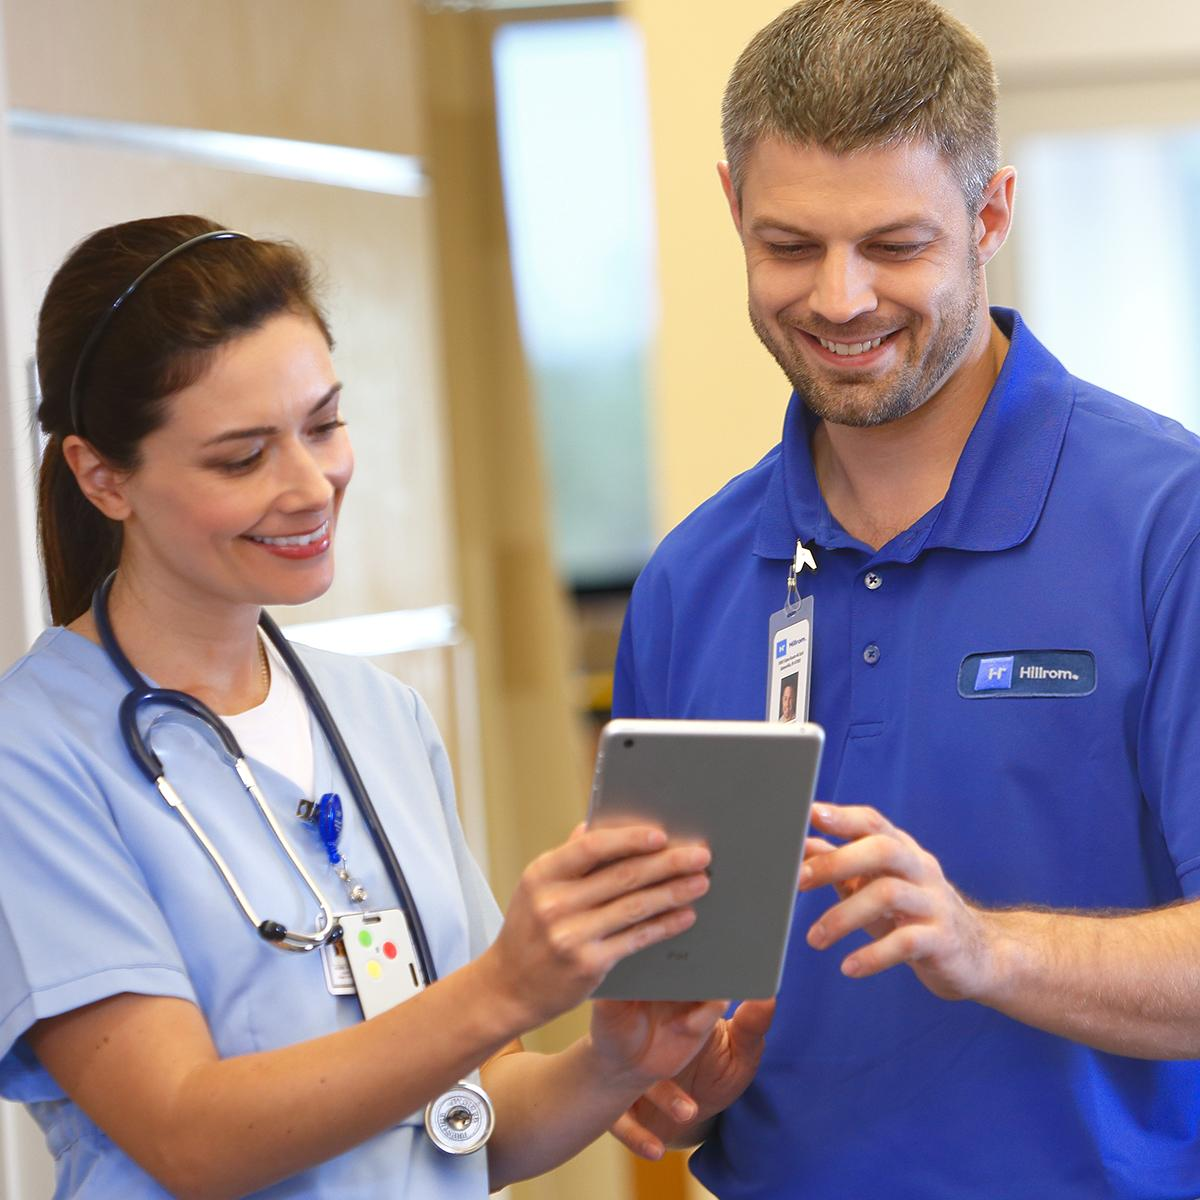 A care provider and a Hillrom support professional consult in a corridor. The clinician shows him data from her tablet device.